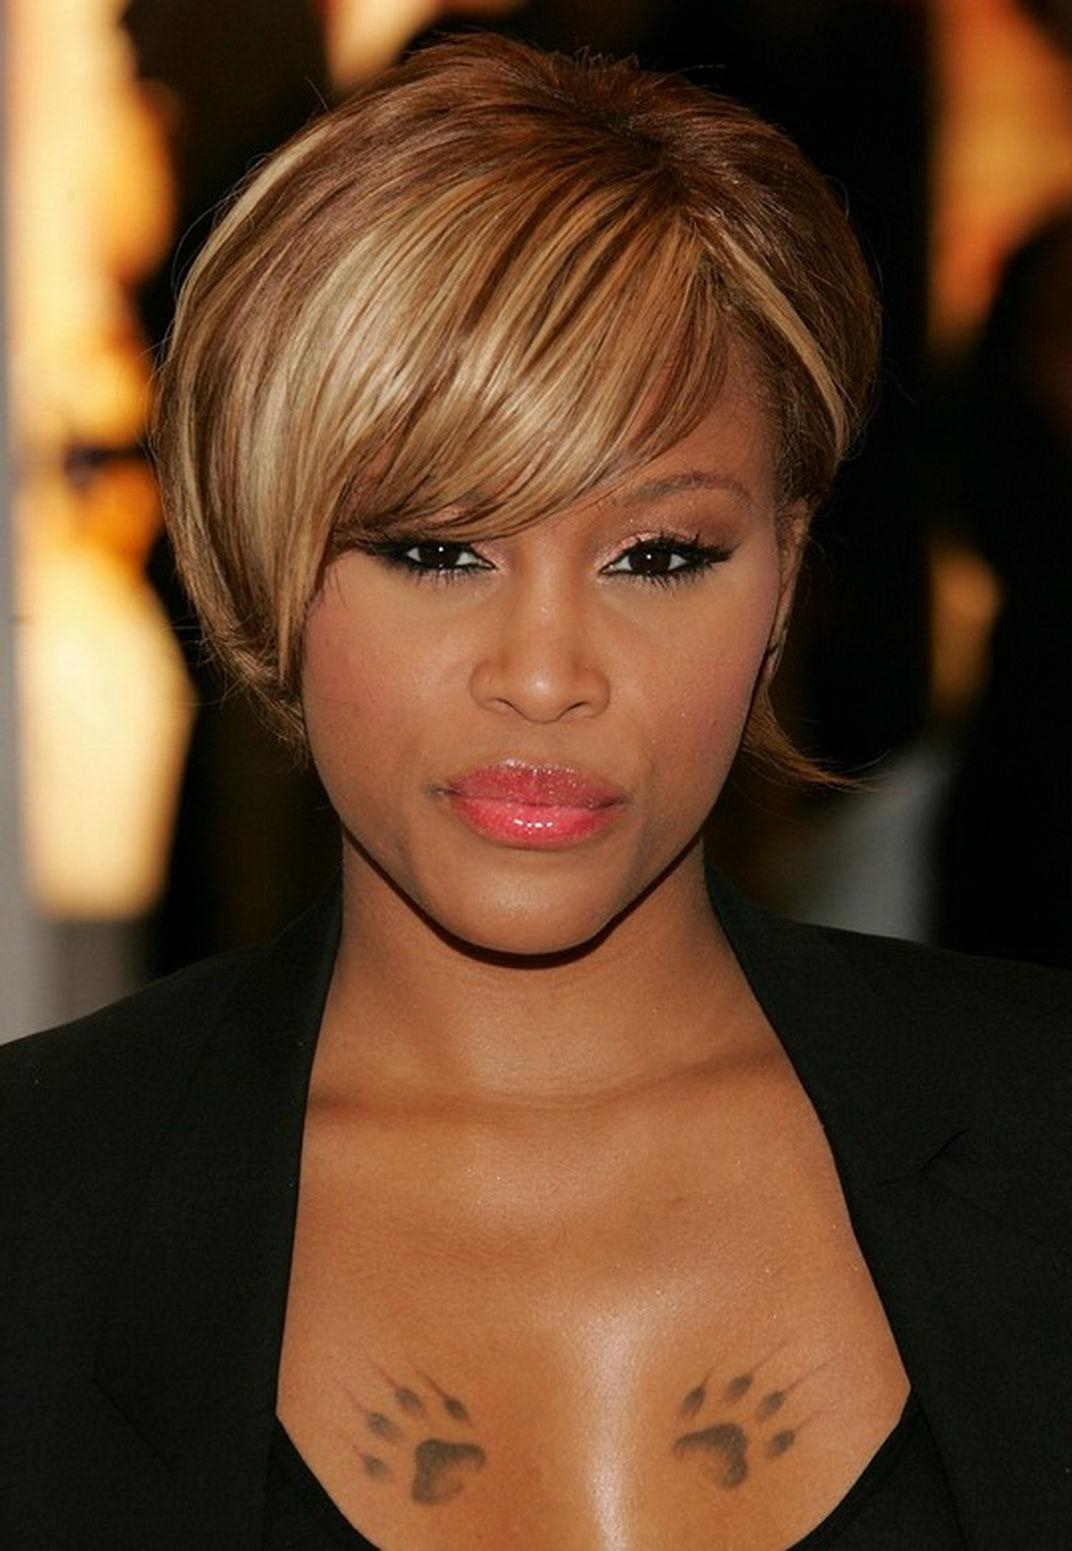 The Short Natural African American Hairstyles Throughout Short Hairstyles For African American Women With Thin Hair (View 9 of 25)